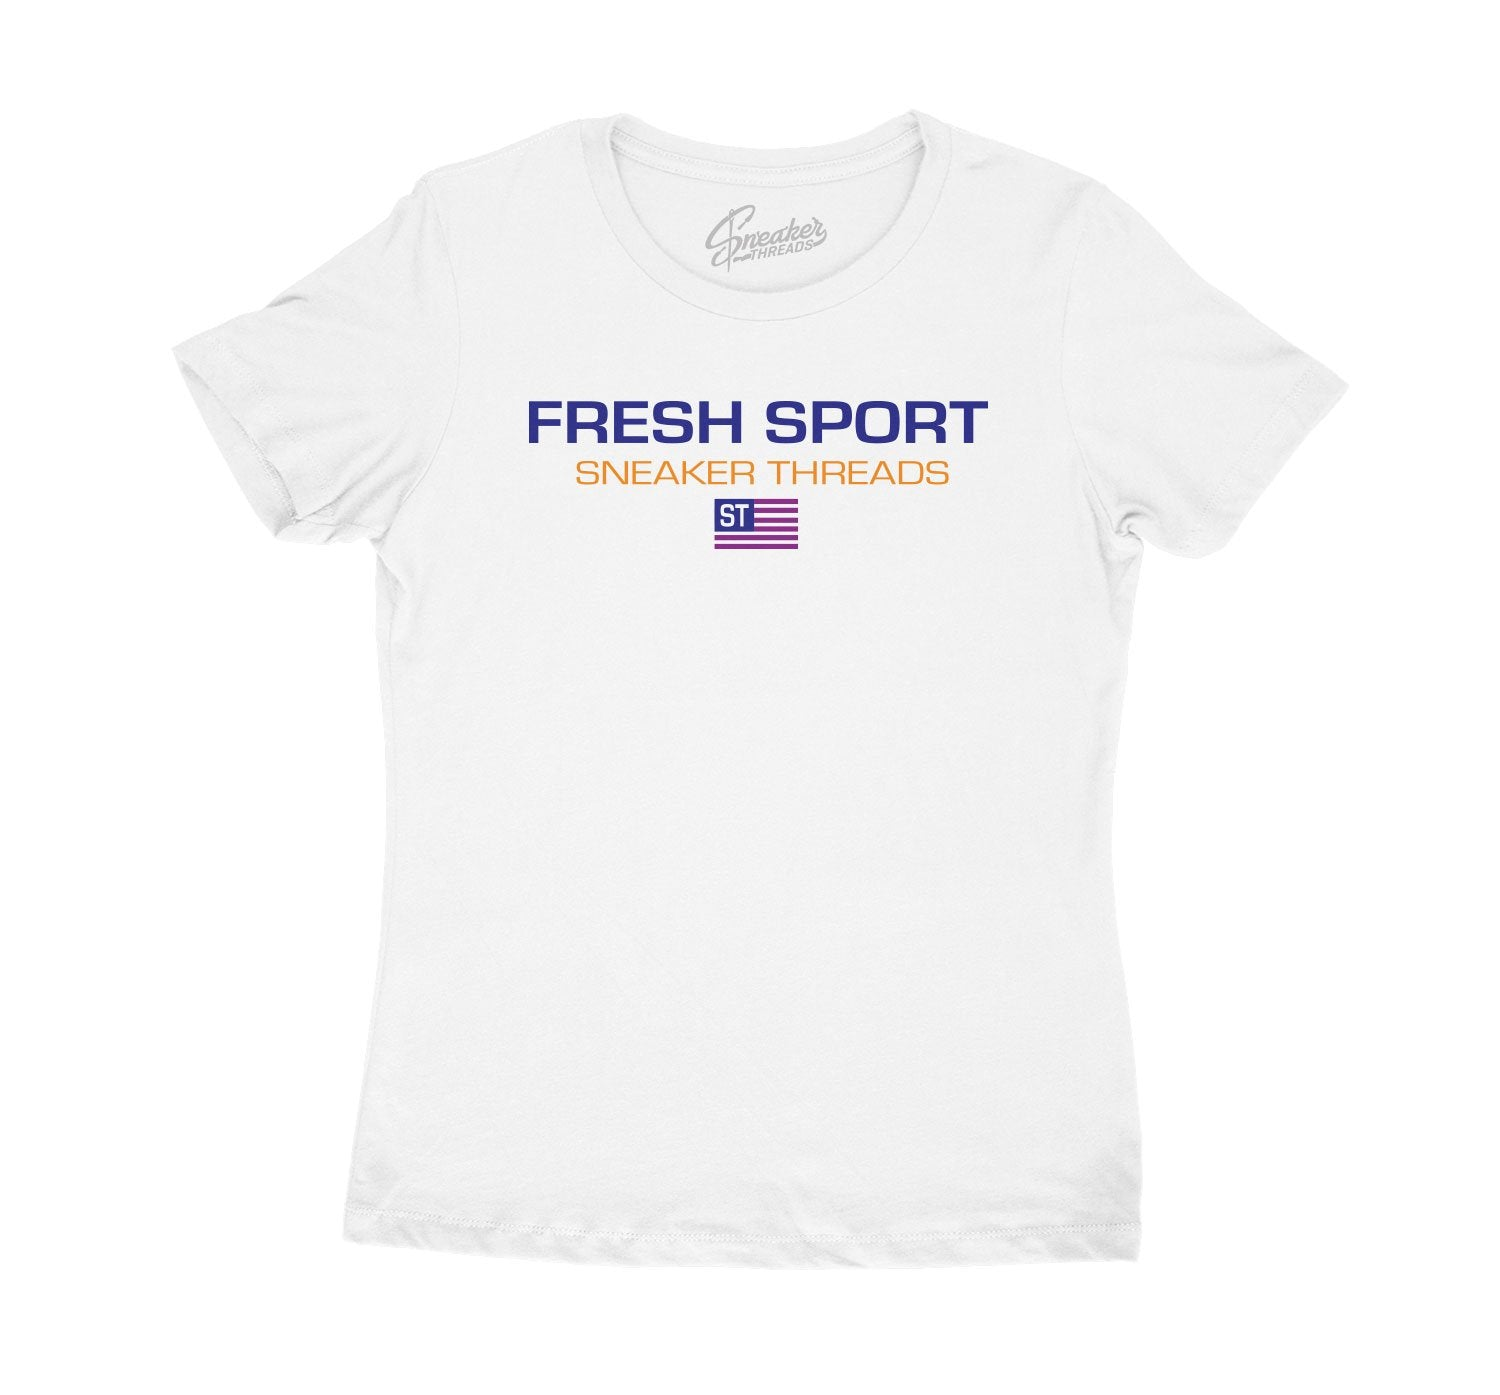 Fresh Polo Sport tee for women to match Jordan 4 Fresh Sport